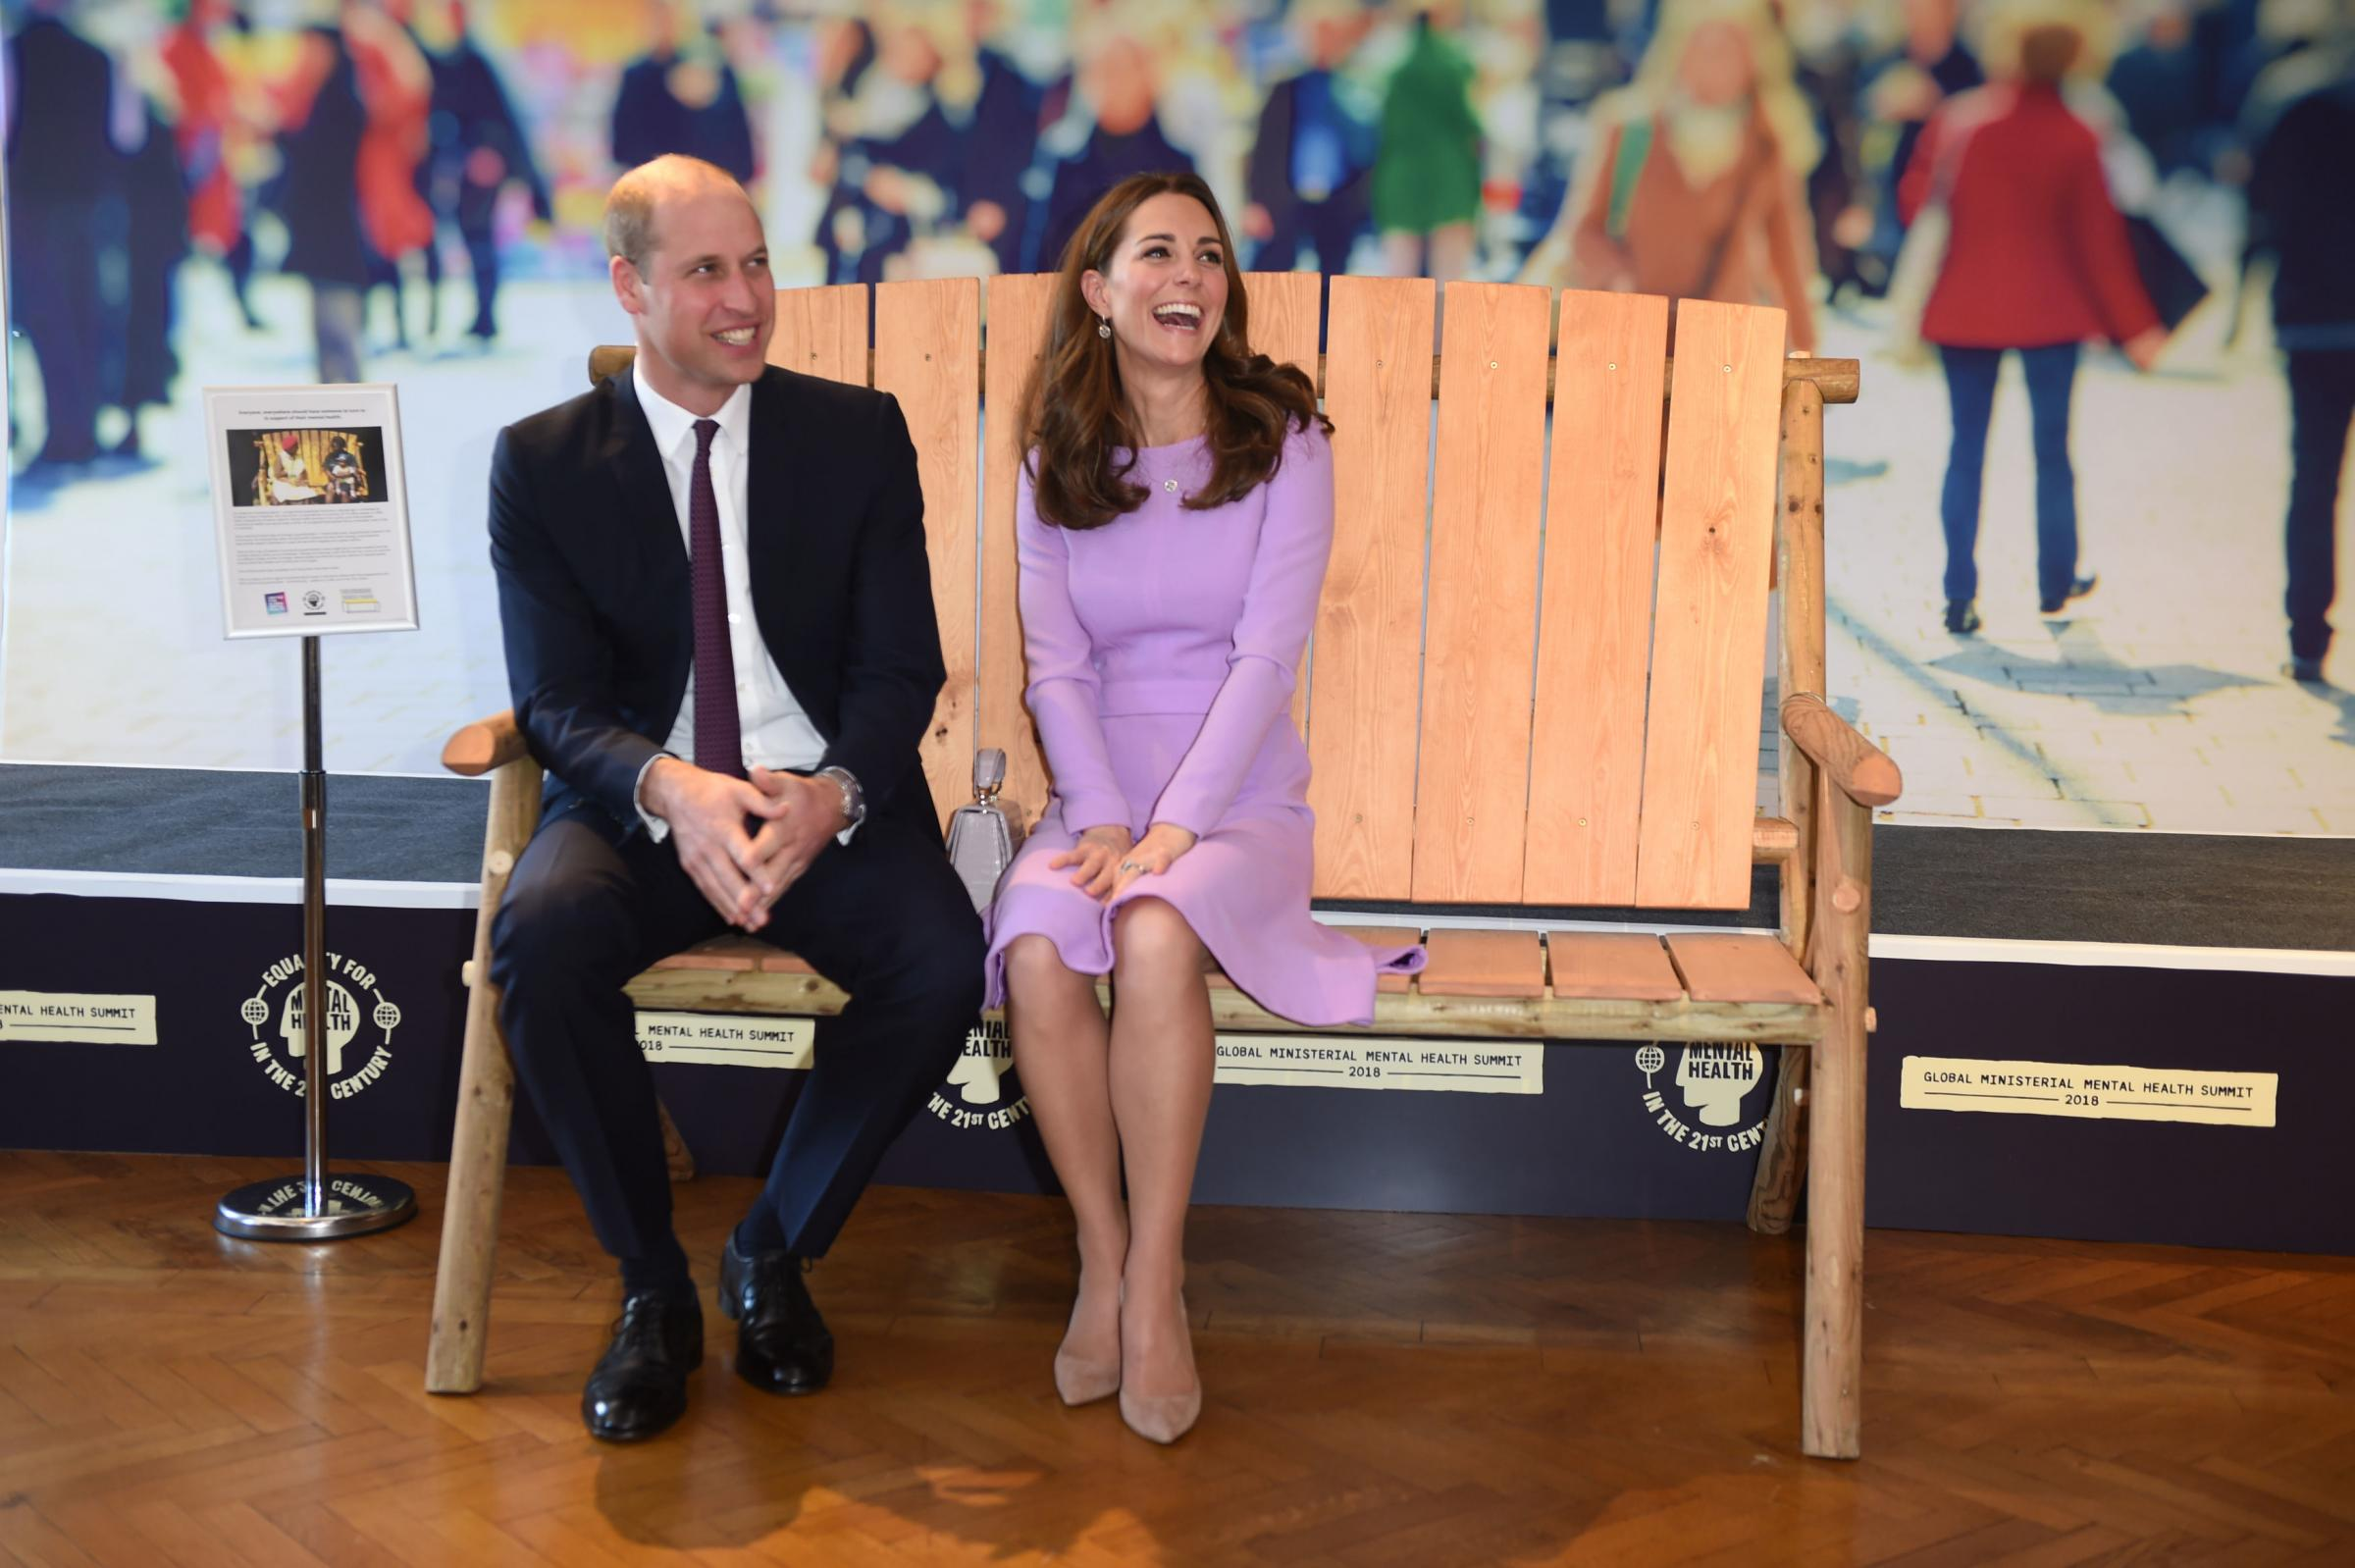 Duchess of Cambridge visits Imperial War Museum to view family letters